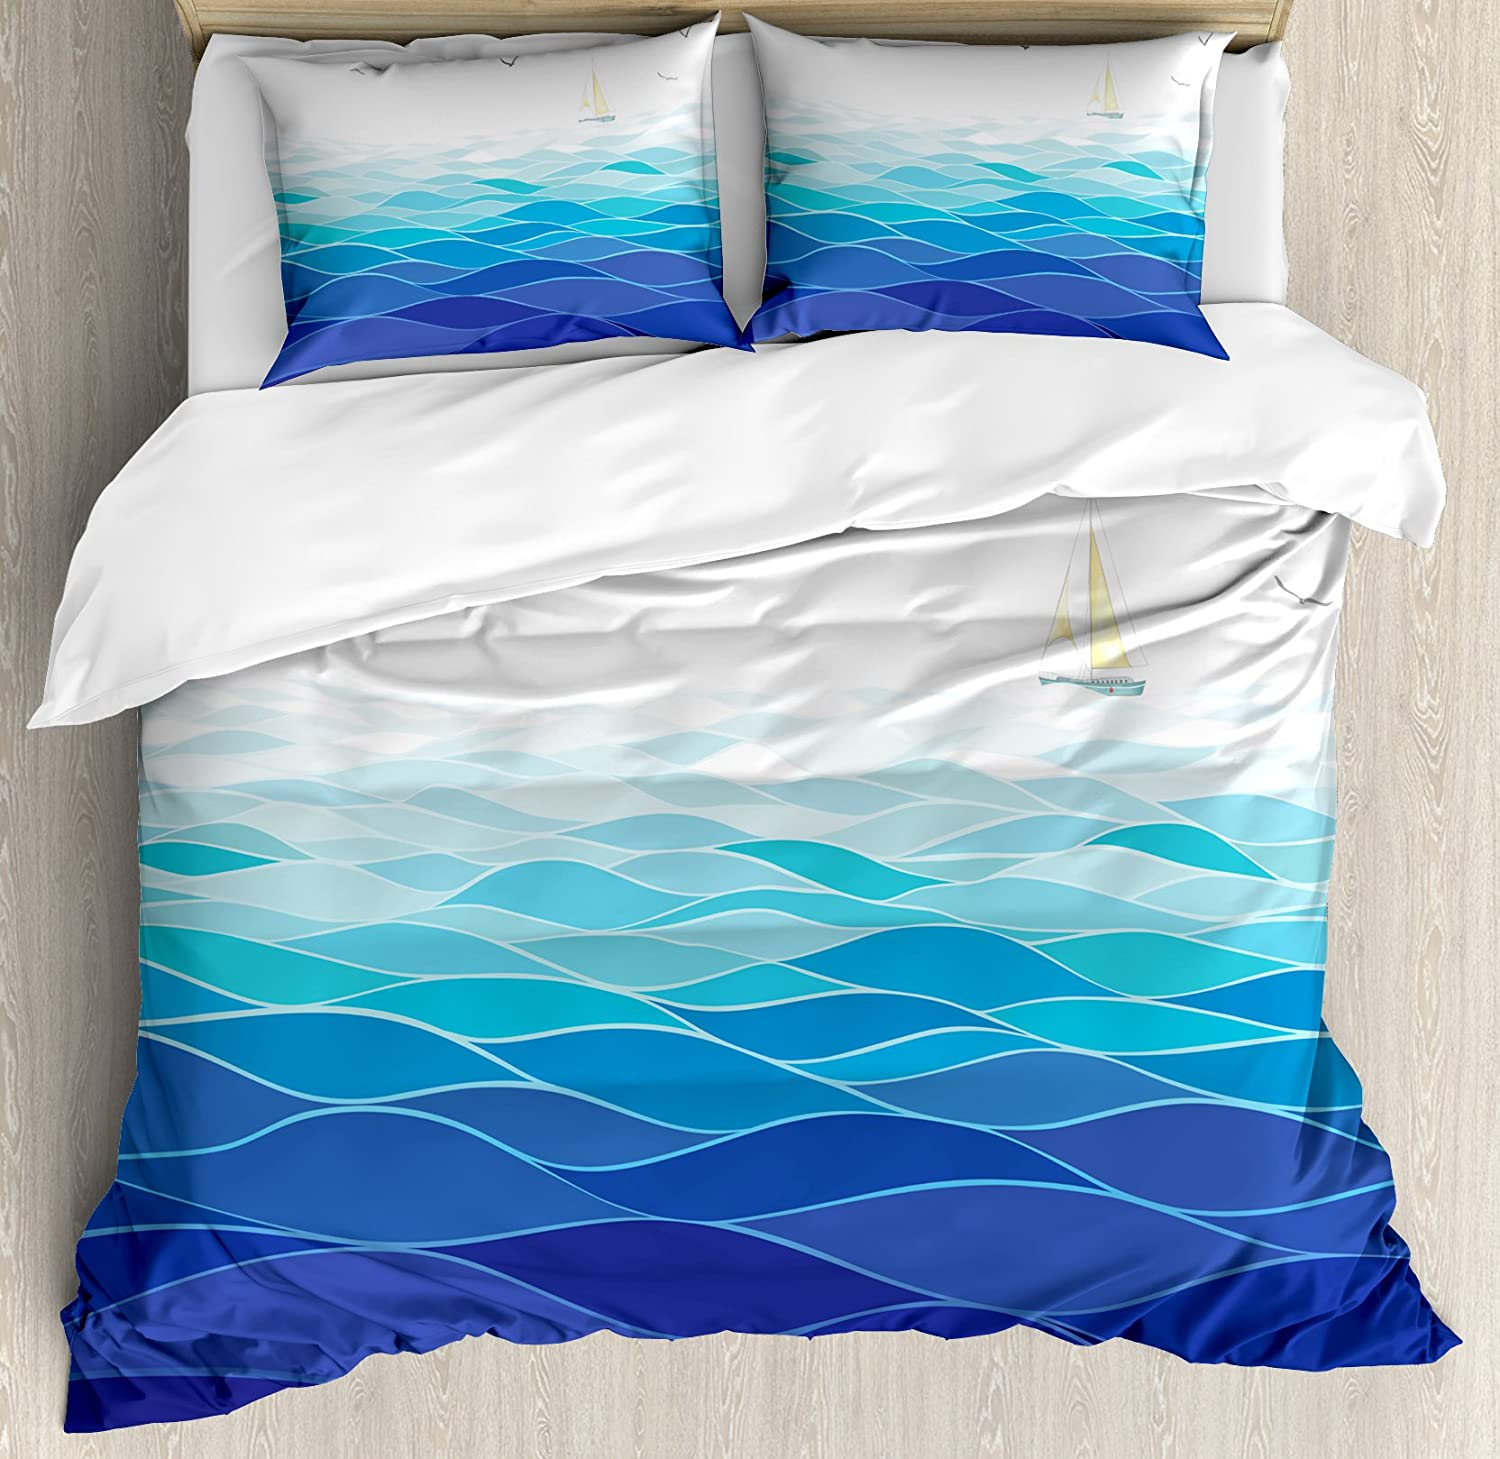 Ambesonne Aqua Duvet Cover Set Sailboat Time sale Free Shipping New Graphic Waves Ocean wit